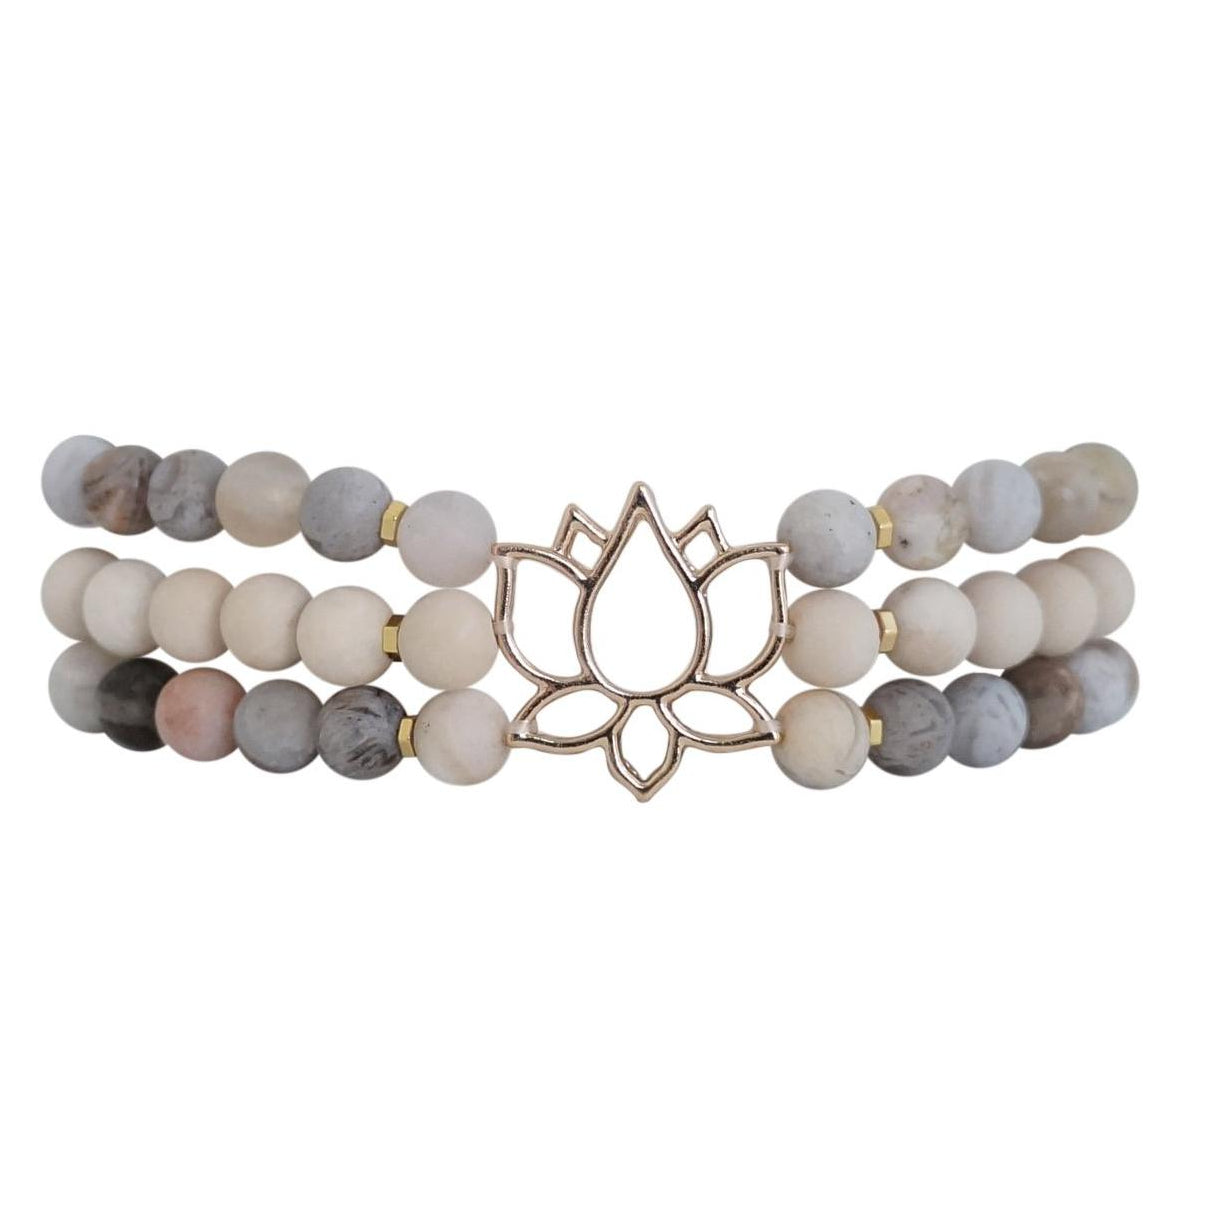 Protection Lotus Bracelet - Carolyn Hearn Designs